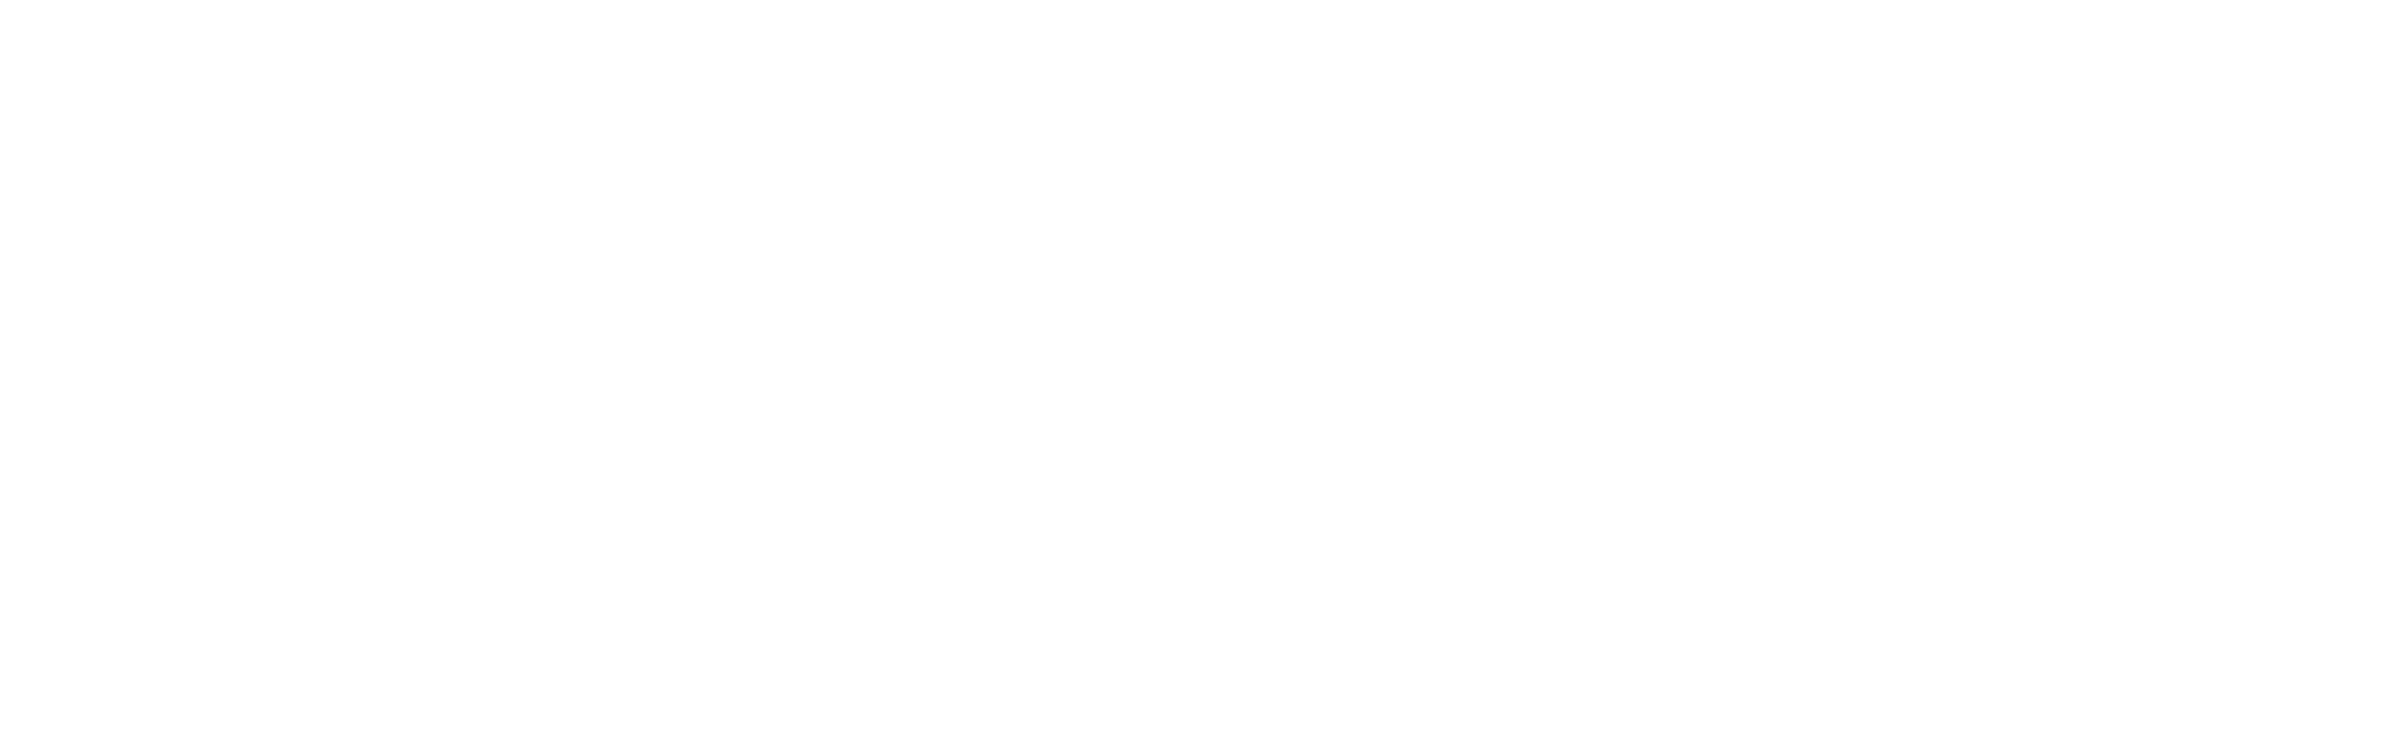 Digital Marketer Bee